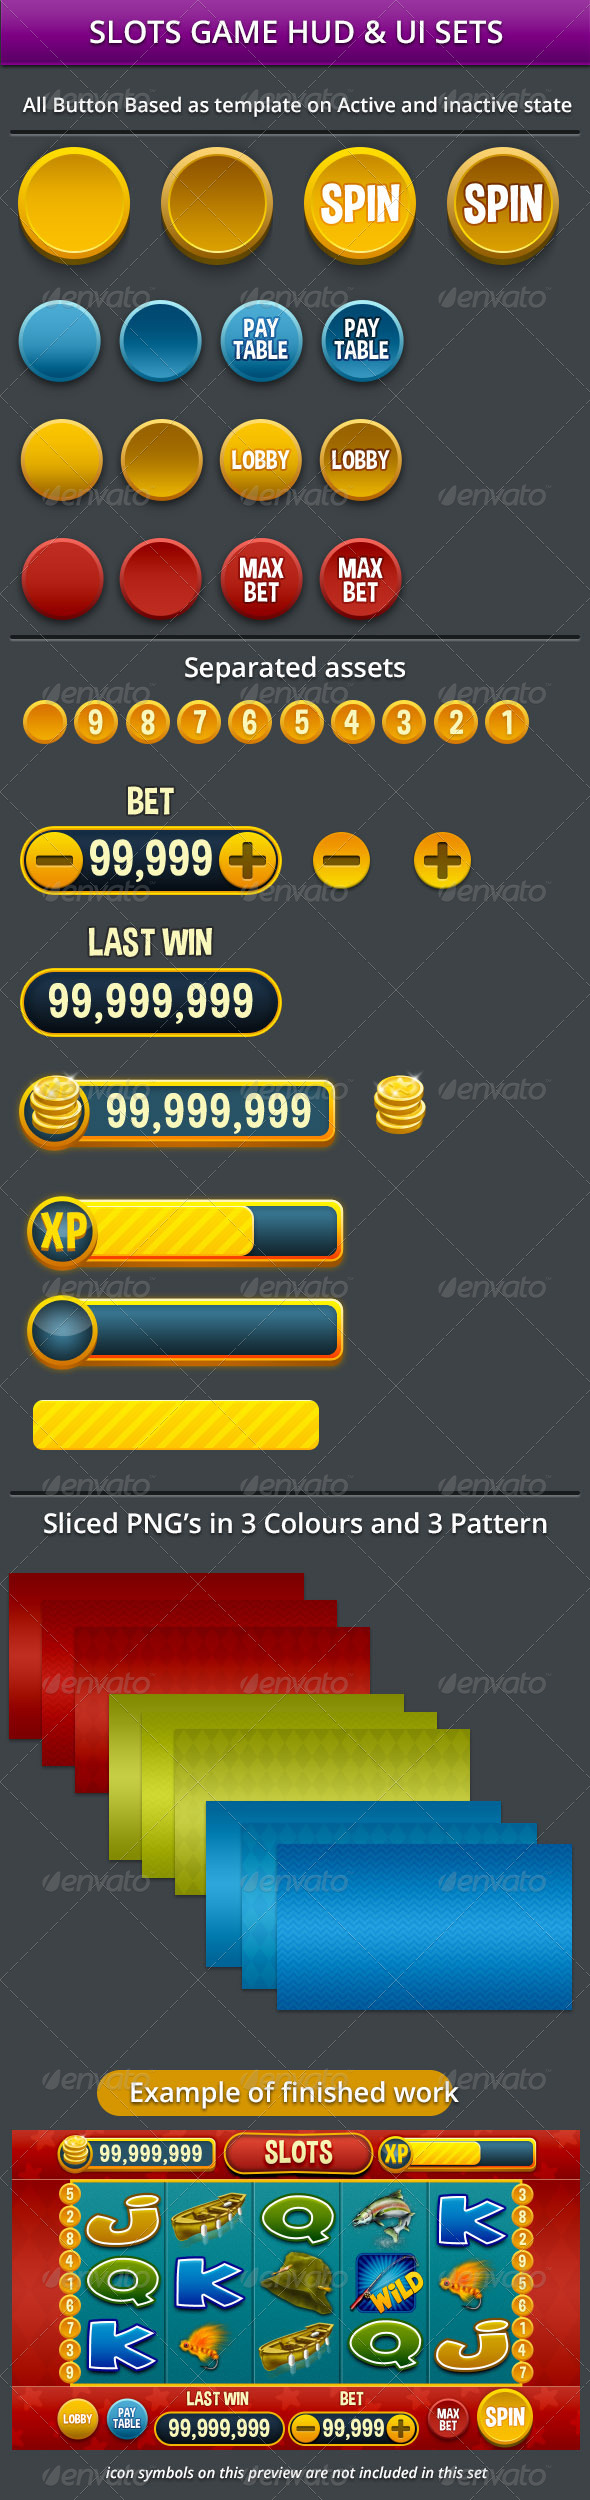 GraphicRiver Slots Game HUD & UI Assets 7646560